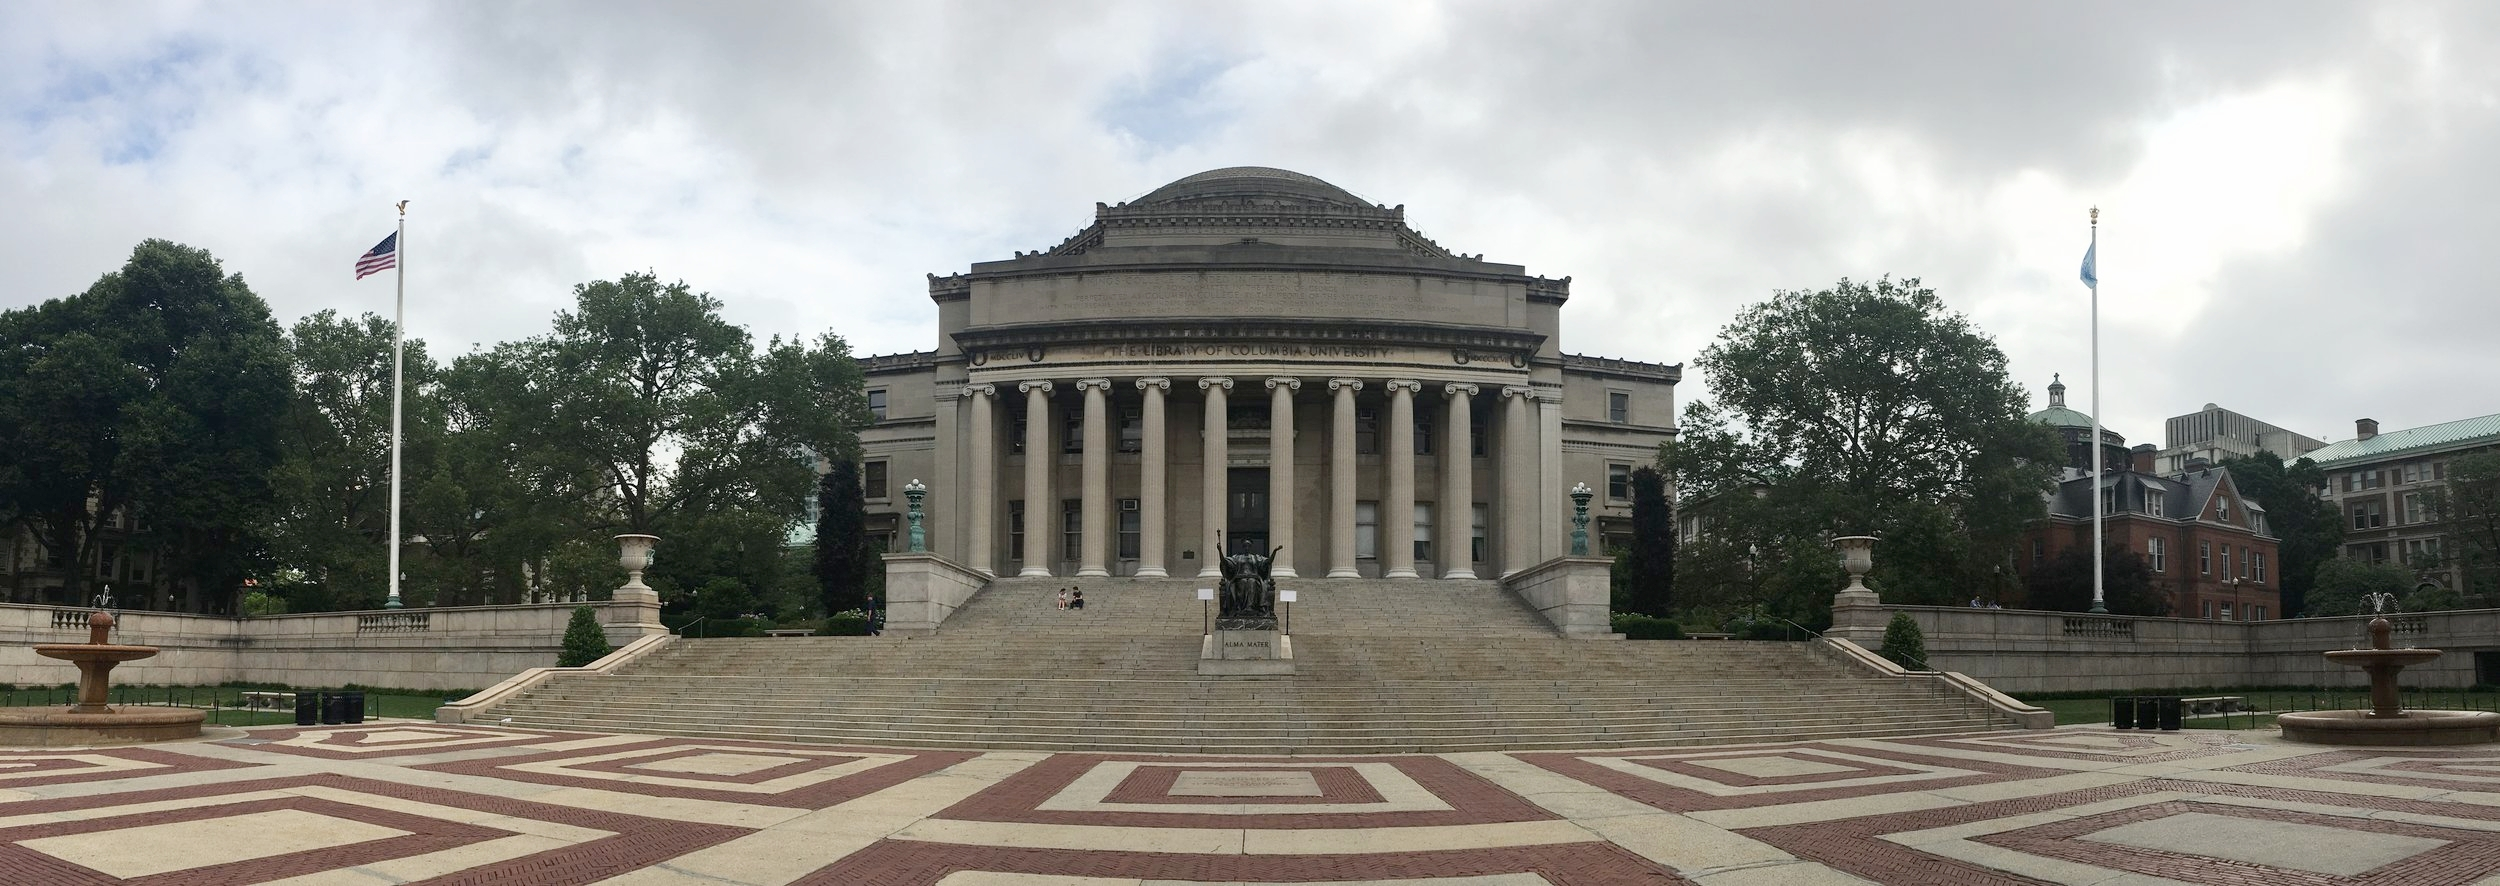 University of Columbia, Low Memorial Library (Photo: M. Alhadeff-Jones, 2017)